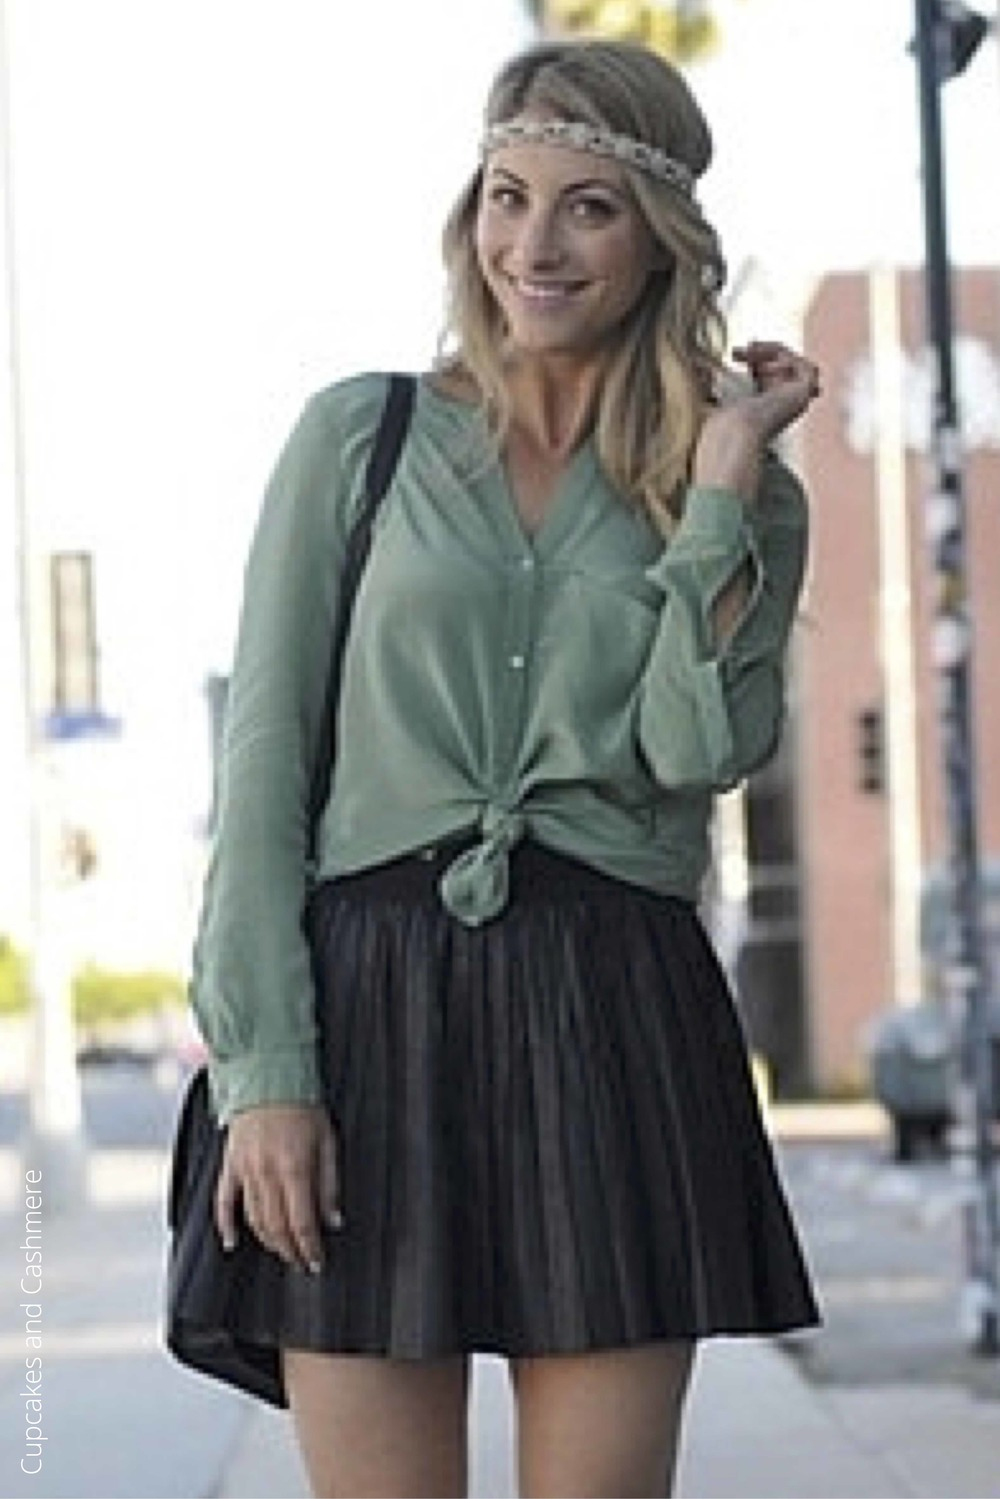 Knotted tops in your 20s | LoloLovett.com